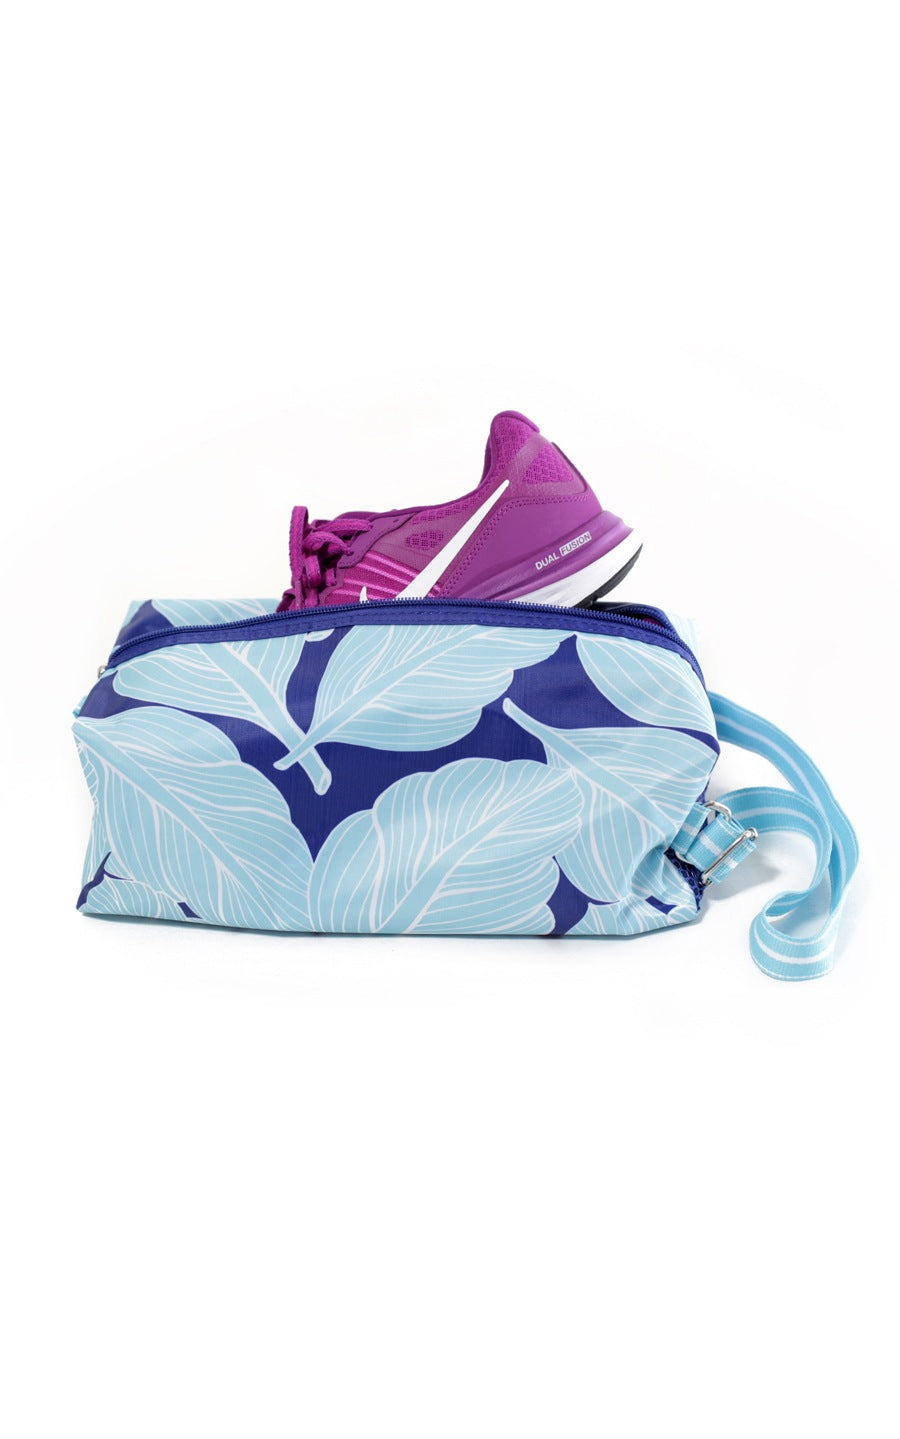 Palm Paradise Athletic Shoe Duffel - FINAL SALE